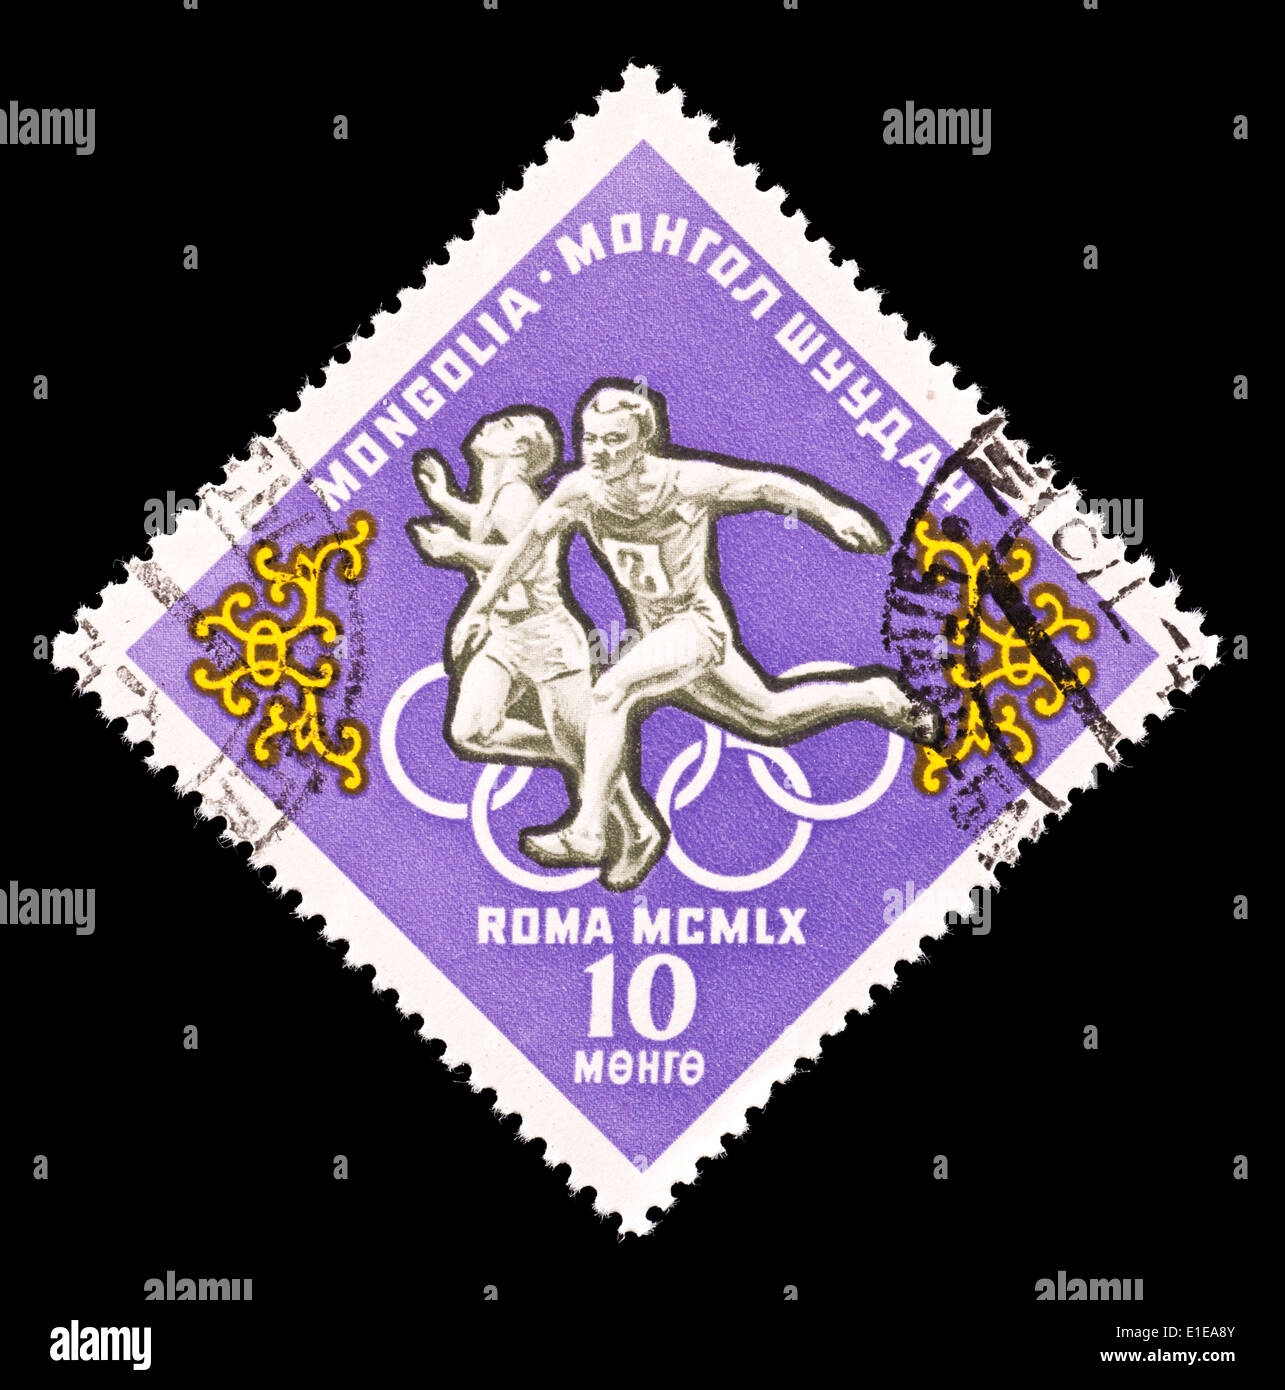 Postage stamp from Mongolia depicting two sprinters, issued for the 1960 Rome Summer Olympic games. - Stock Image